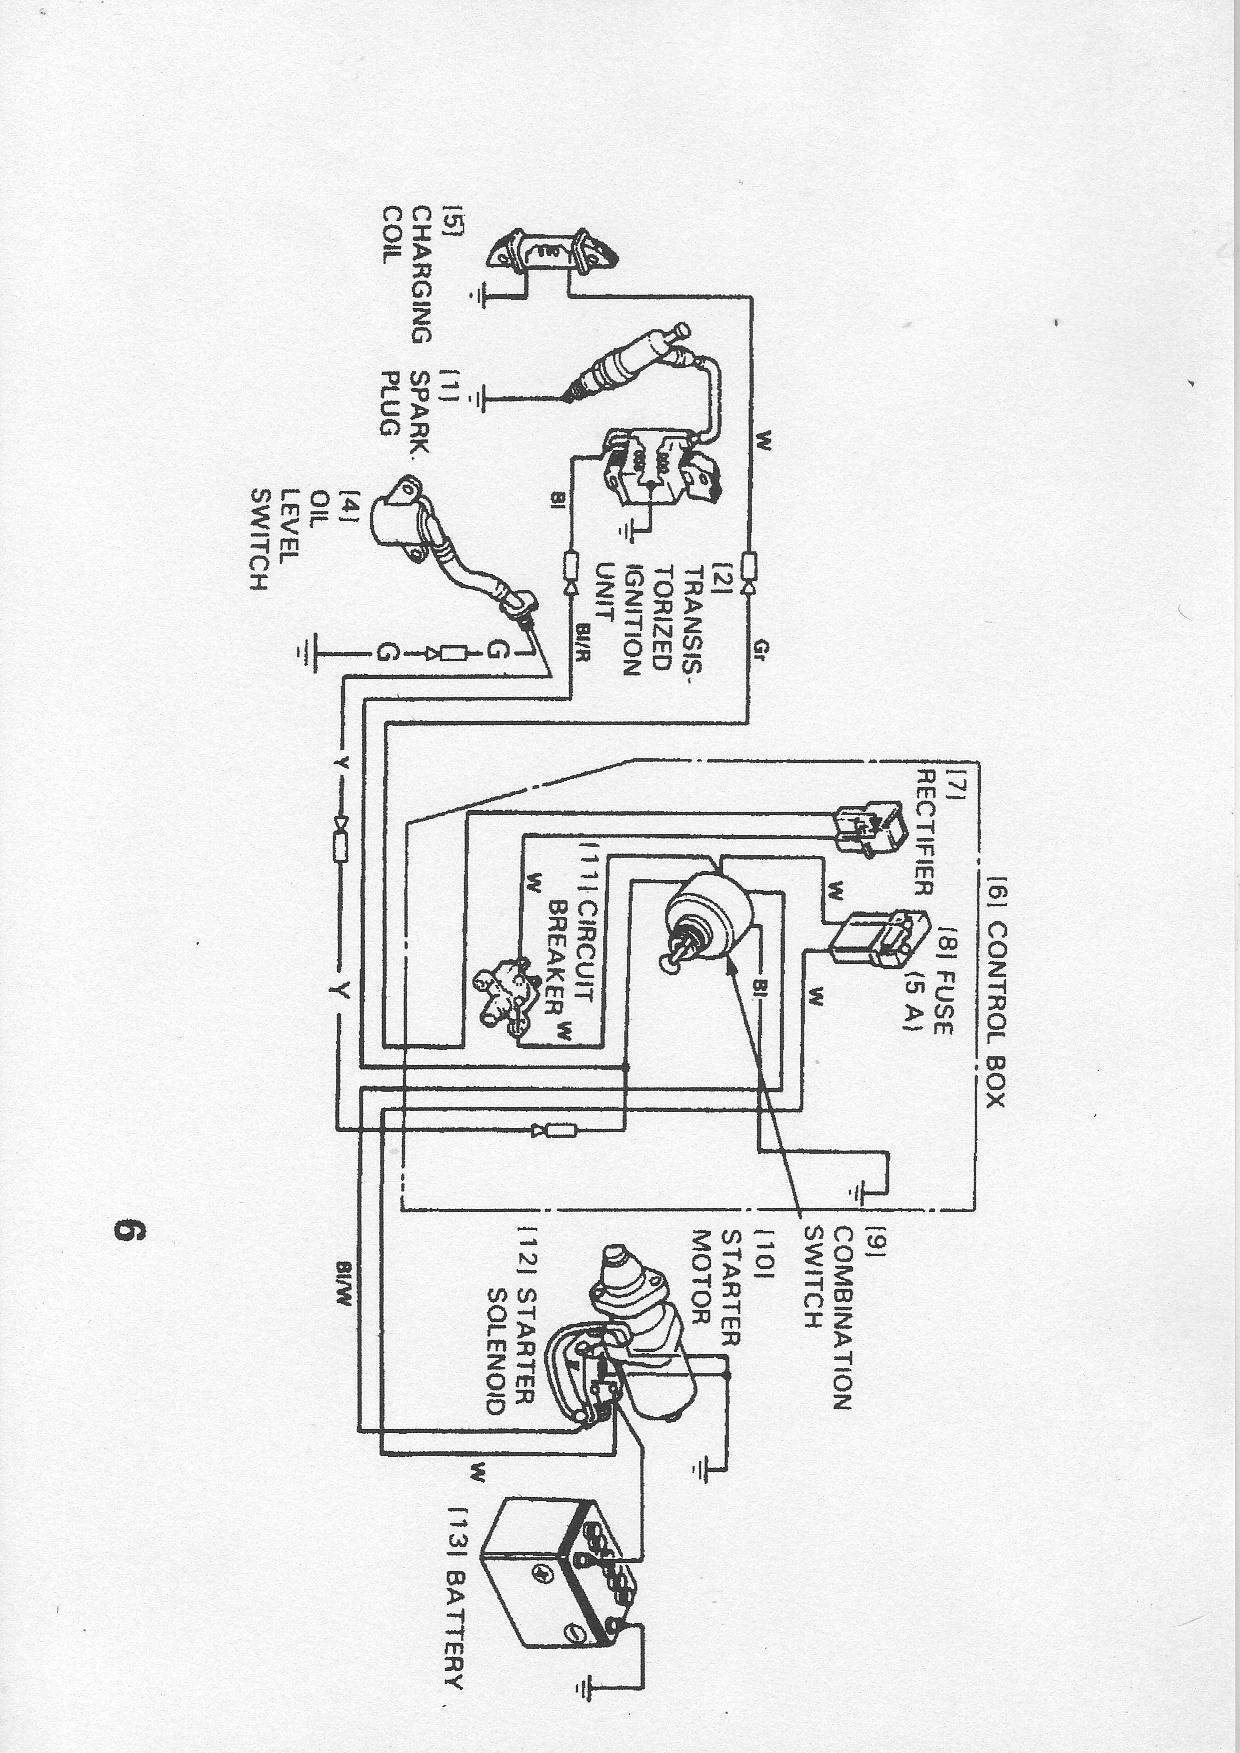 4 Stroke Engine Carburetor Vac Diagram together with Honda engine workshop service manuals also Starcraft Wiring Harness Diagram further Honda Cg 125 Wiring Diagrams And additionally Honda gx160 parts diagram. on honda gx630 engine parts diagram